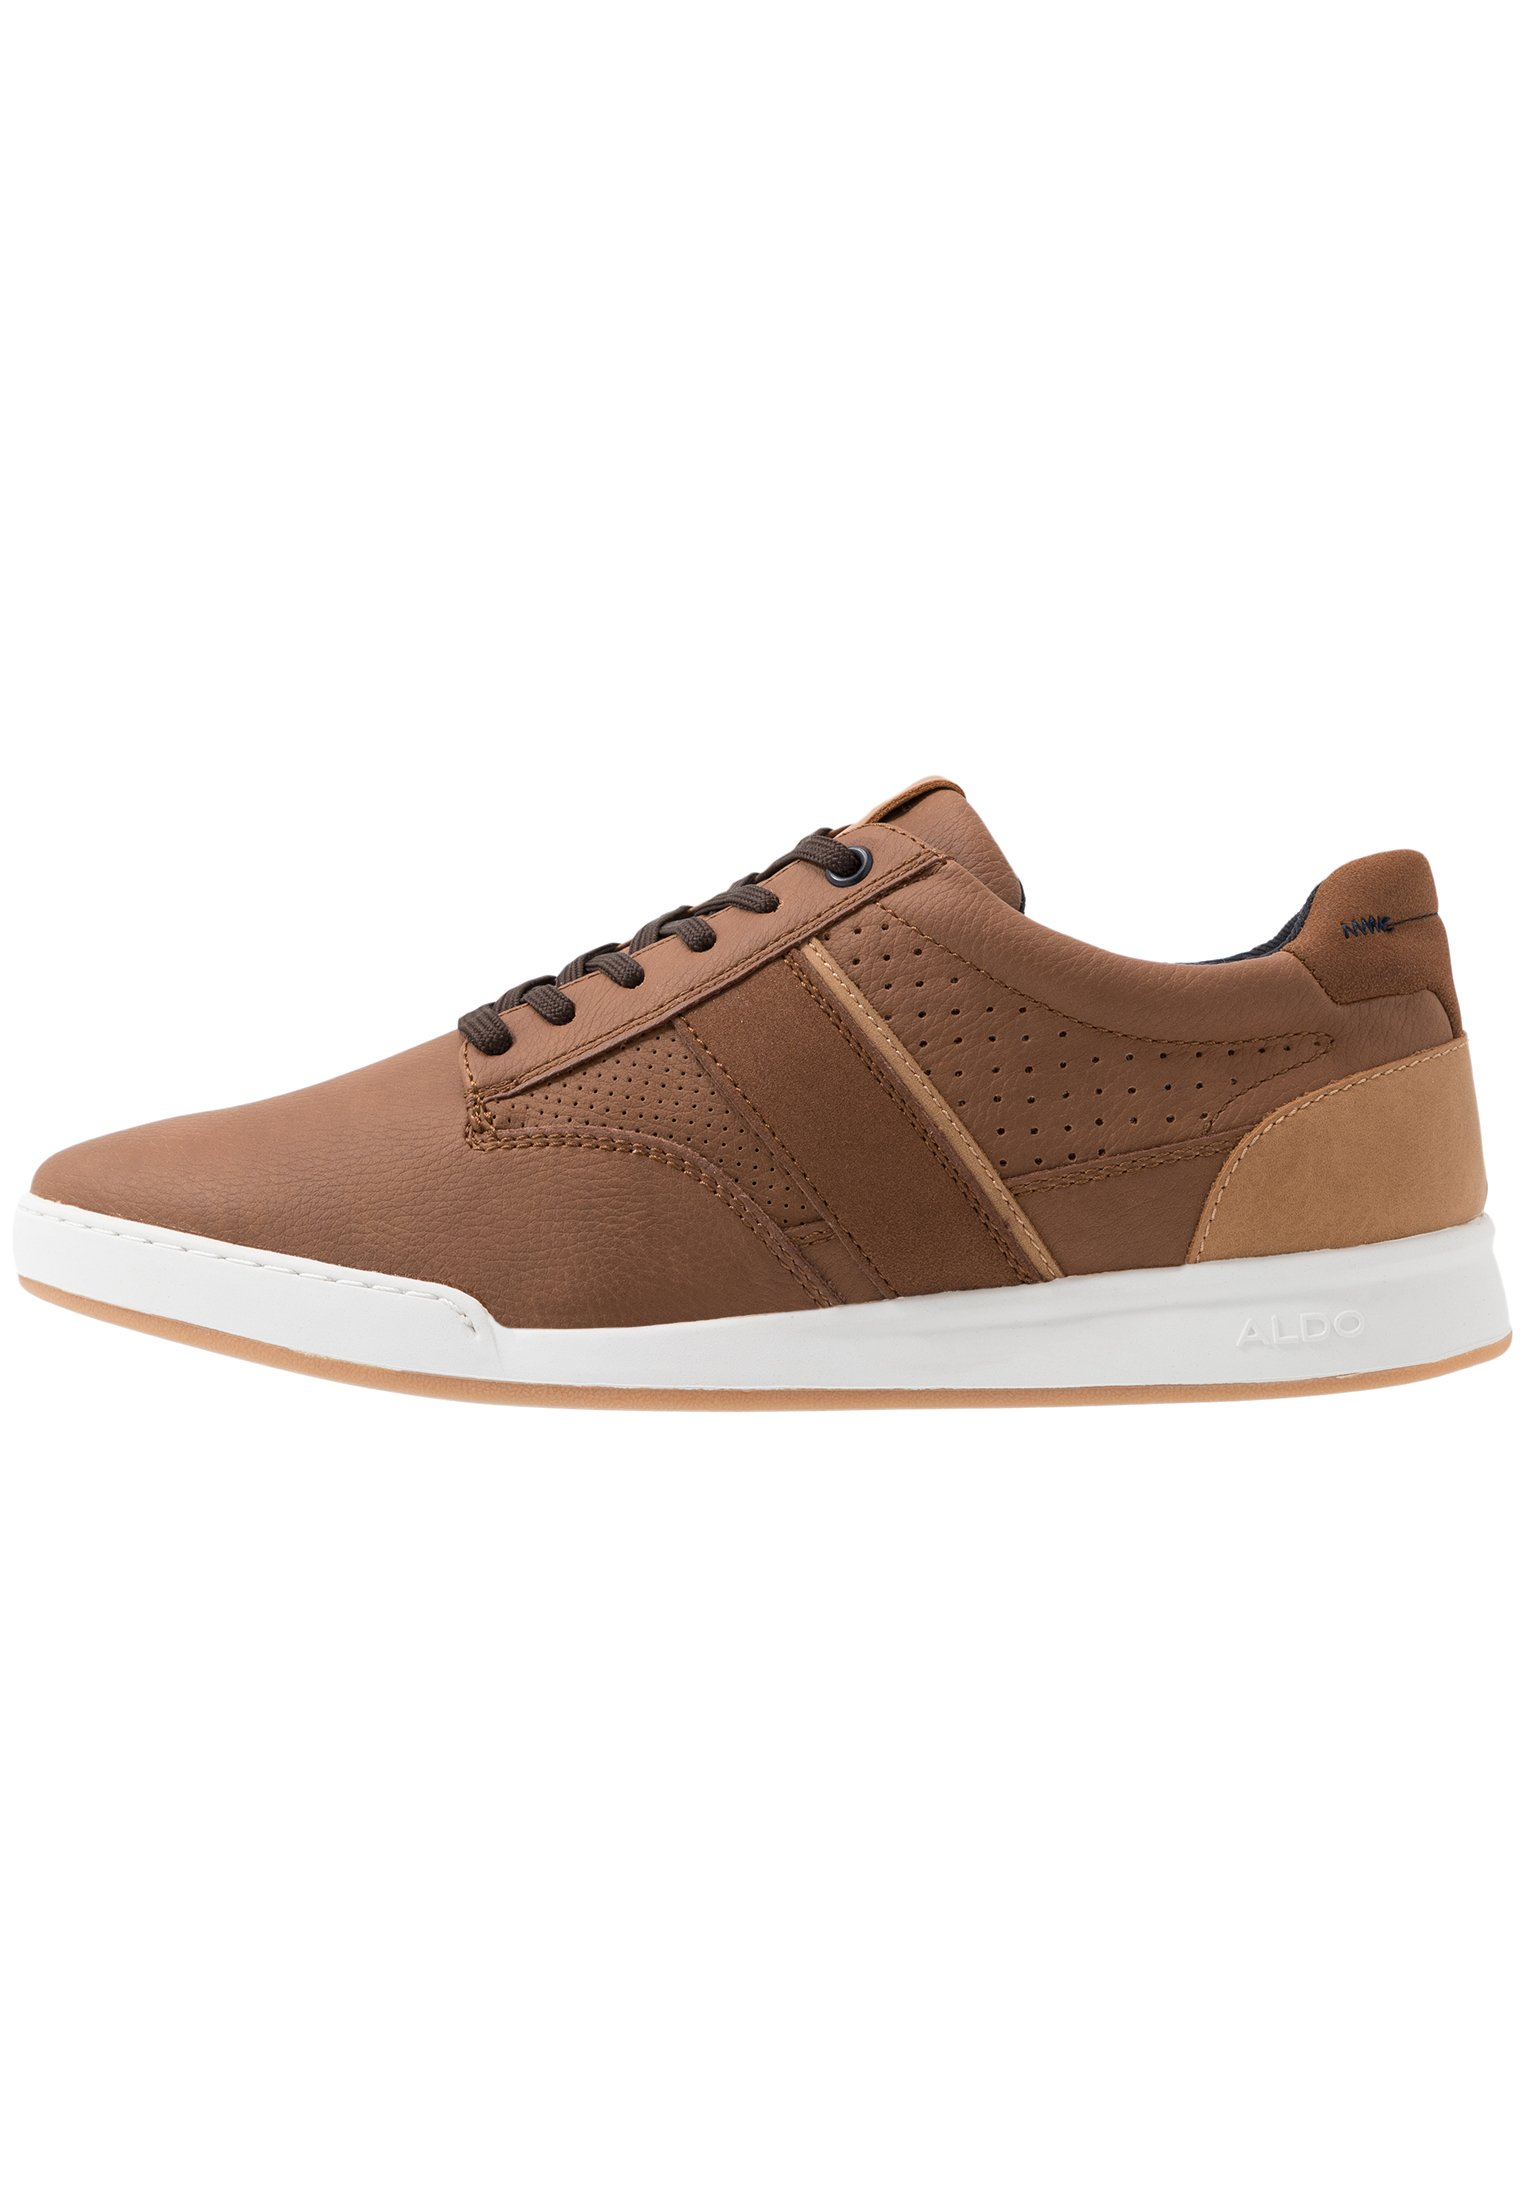 MIRERALLA Sneakers tan